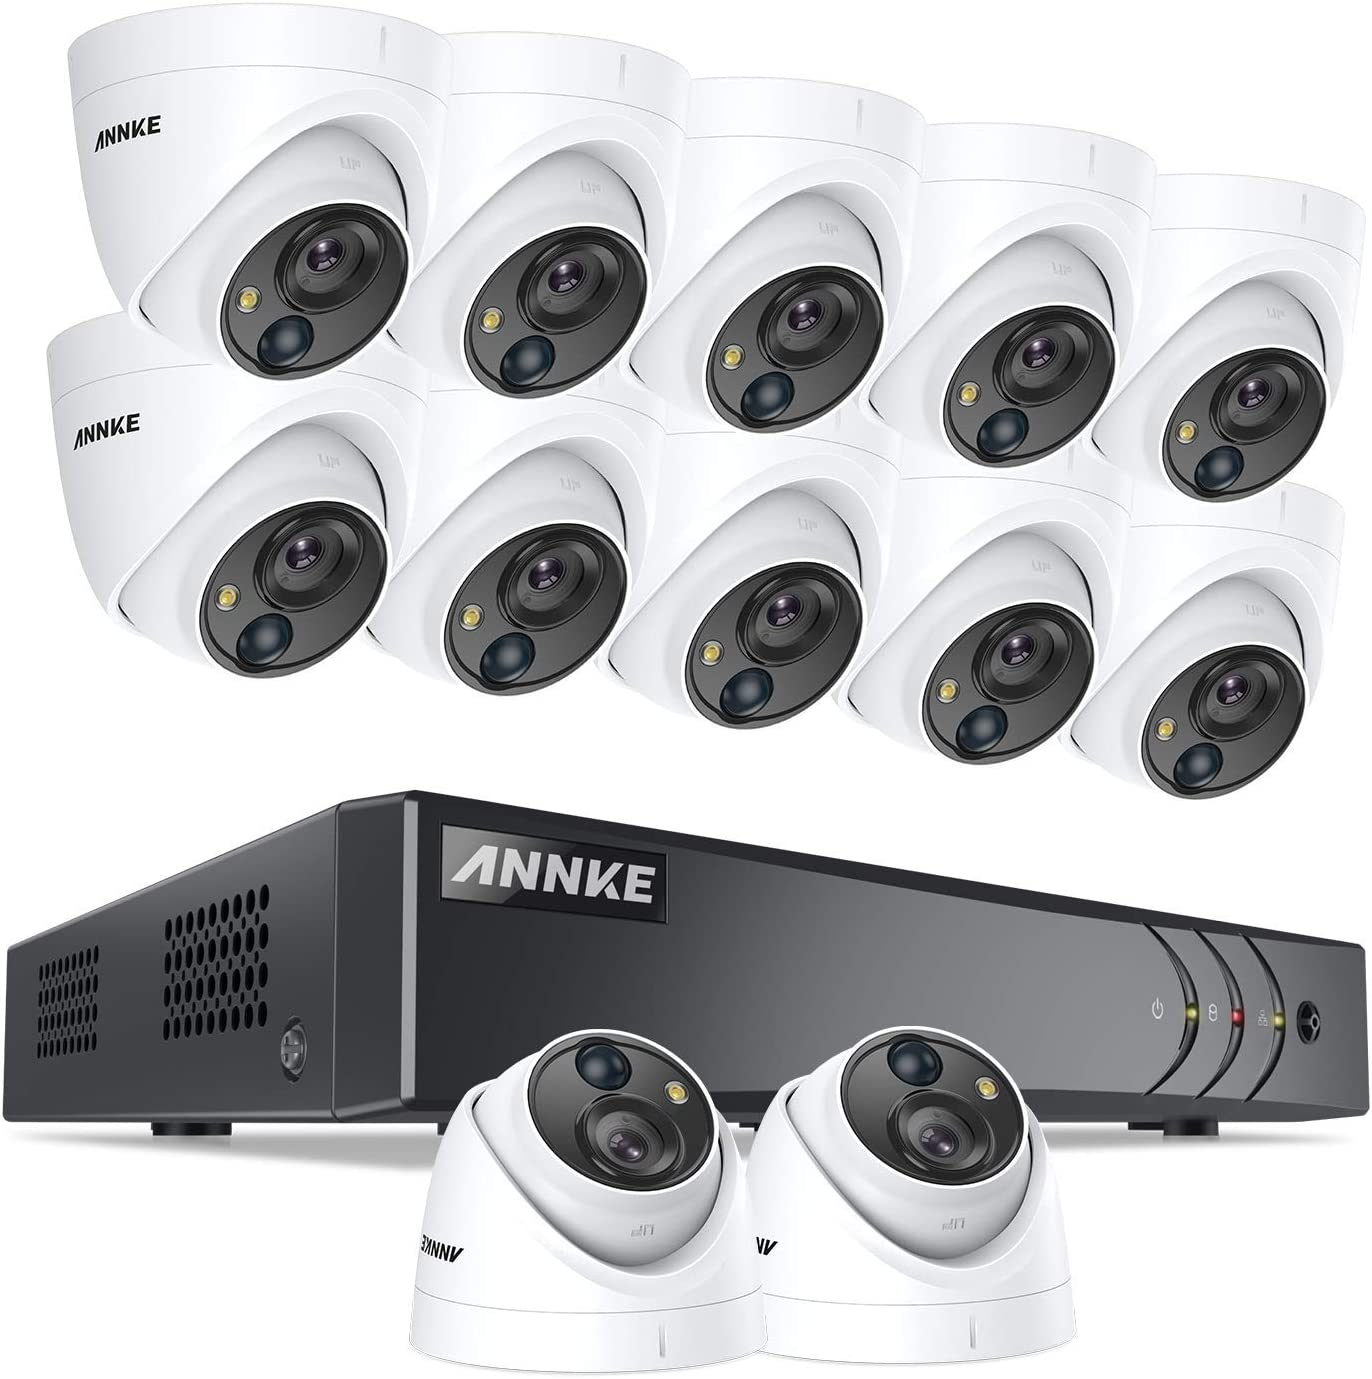 ANNKE 16 Channel Virginia Beach Mall 5MP Security Camera with Excellence No DVR Systems H.265+